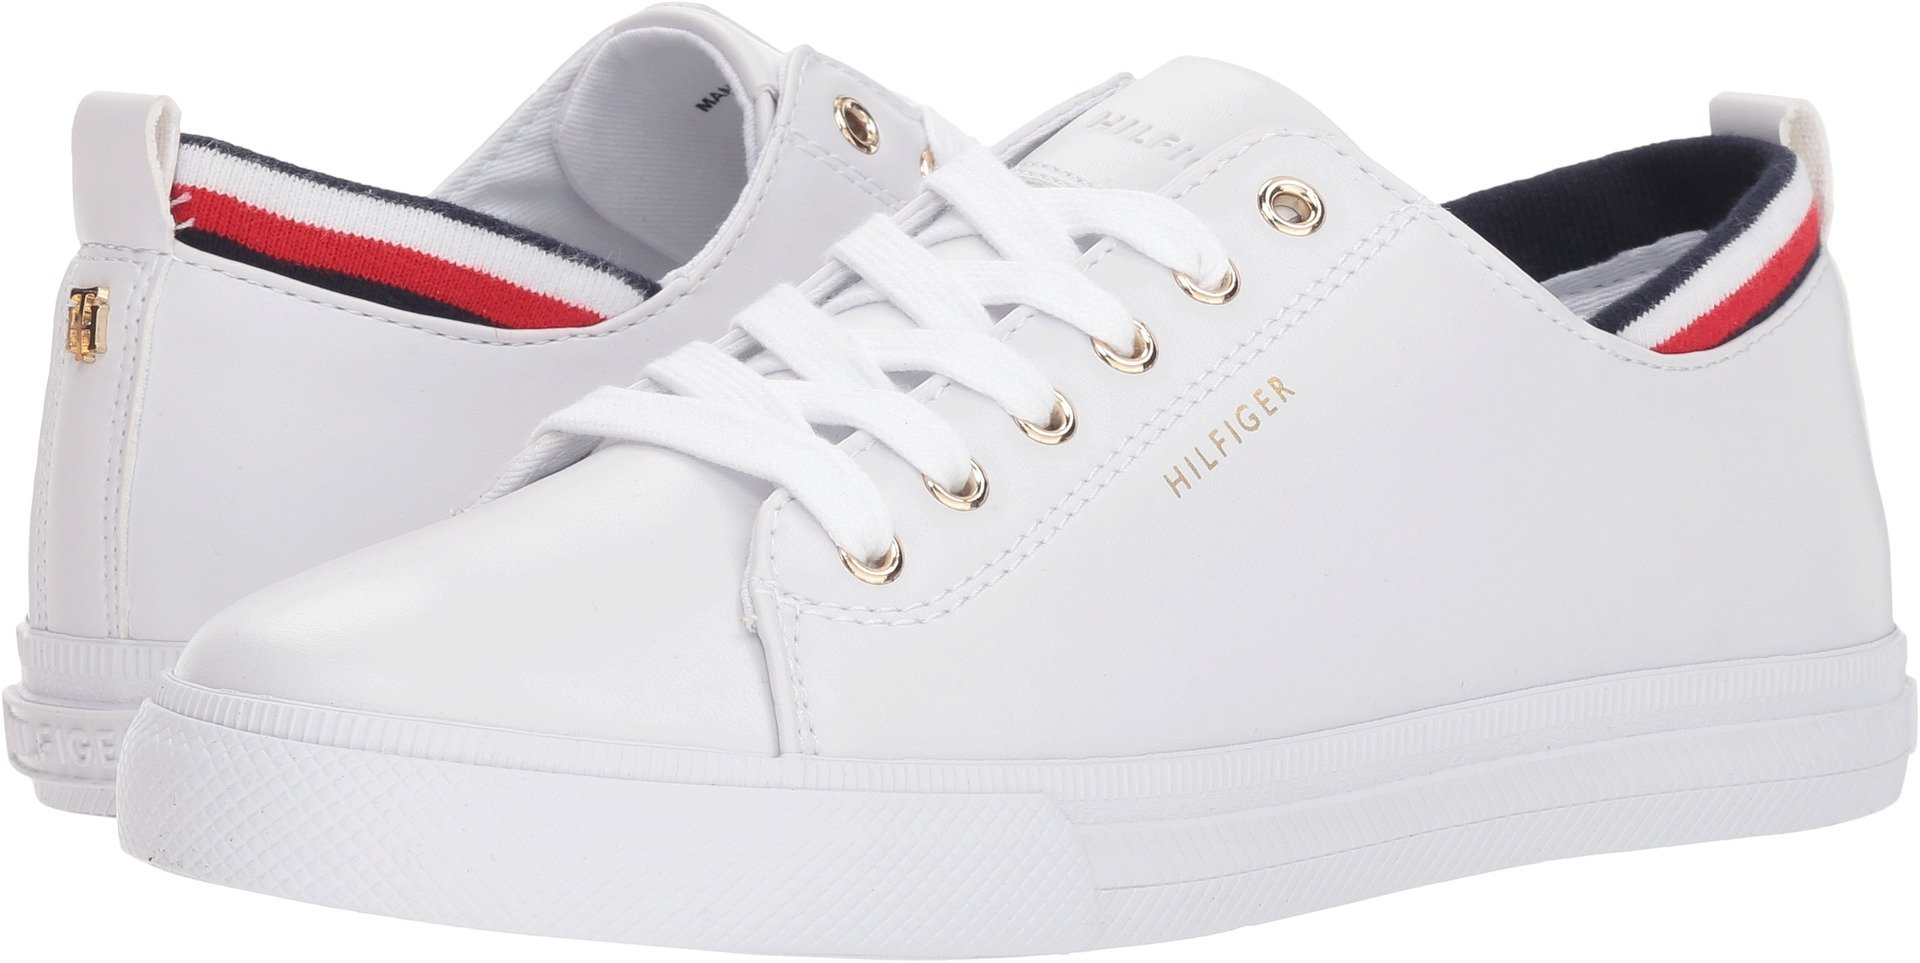 Tommy Hilfiger Women's Lou White Leather 7.5 M US